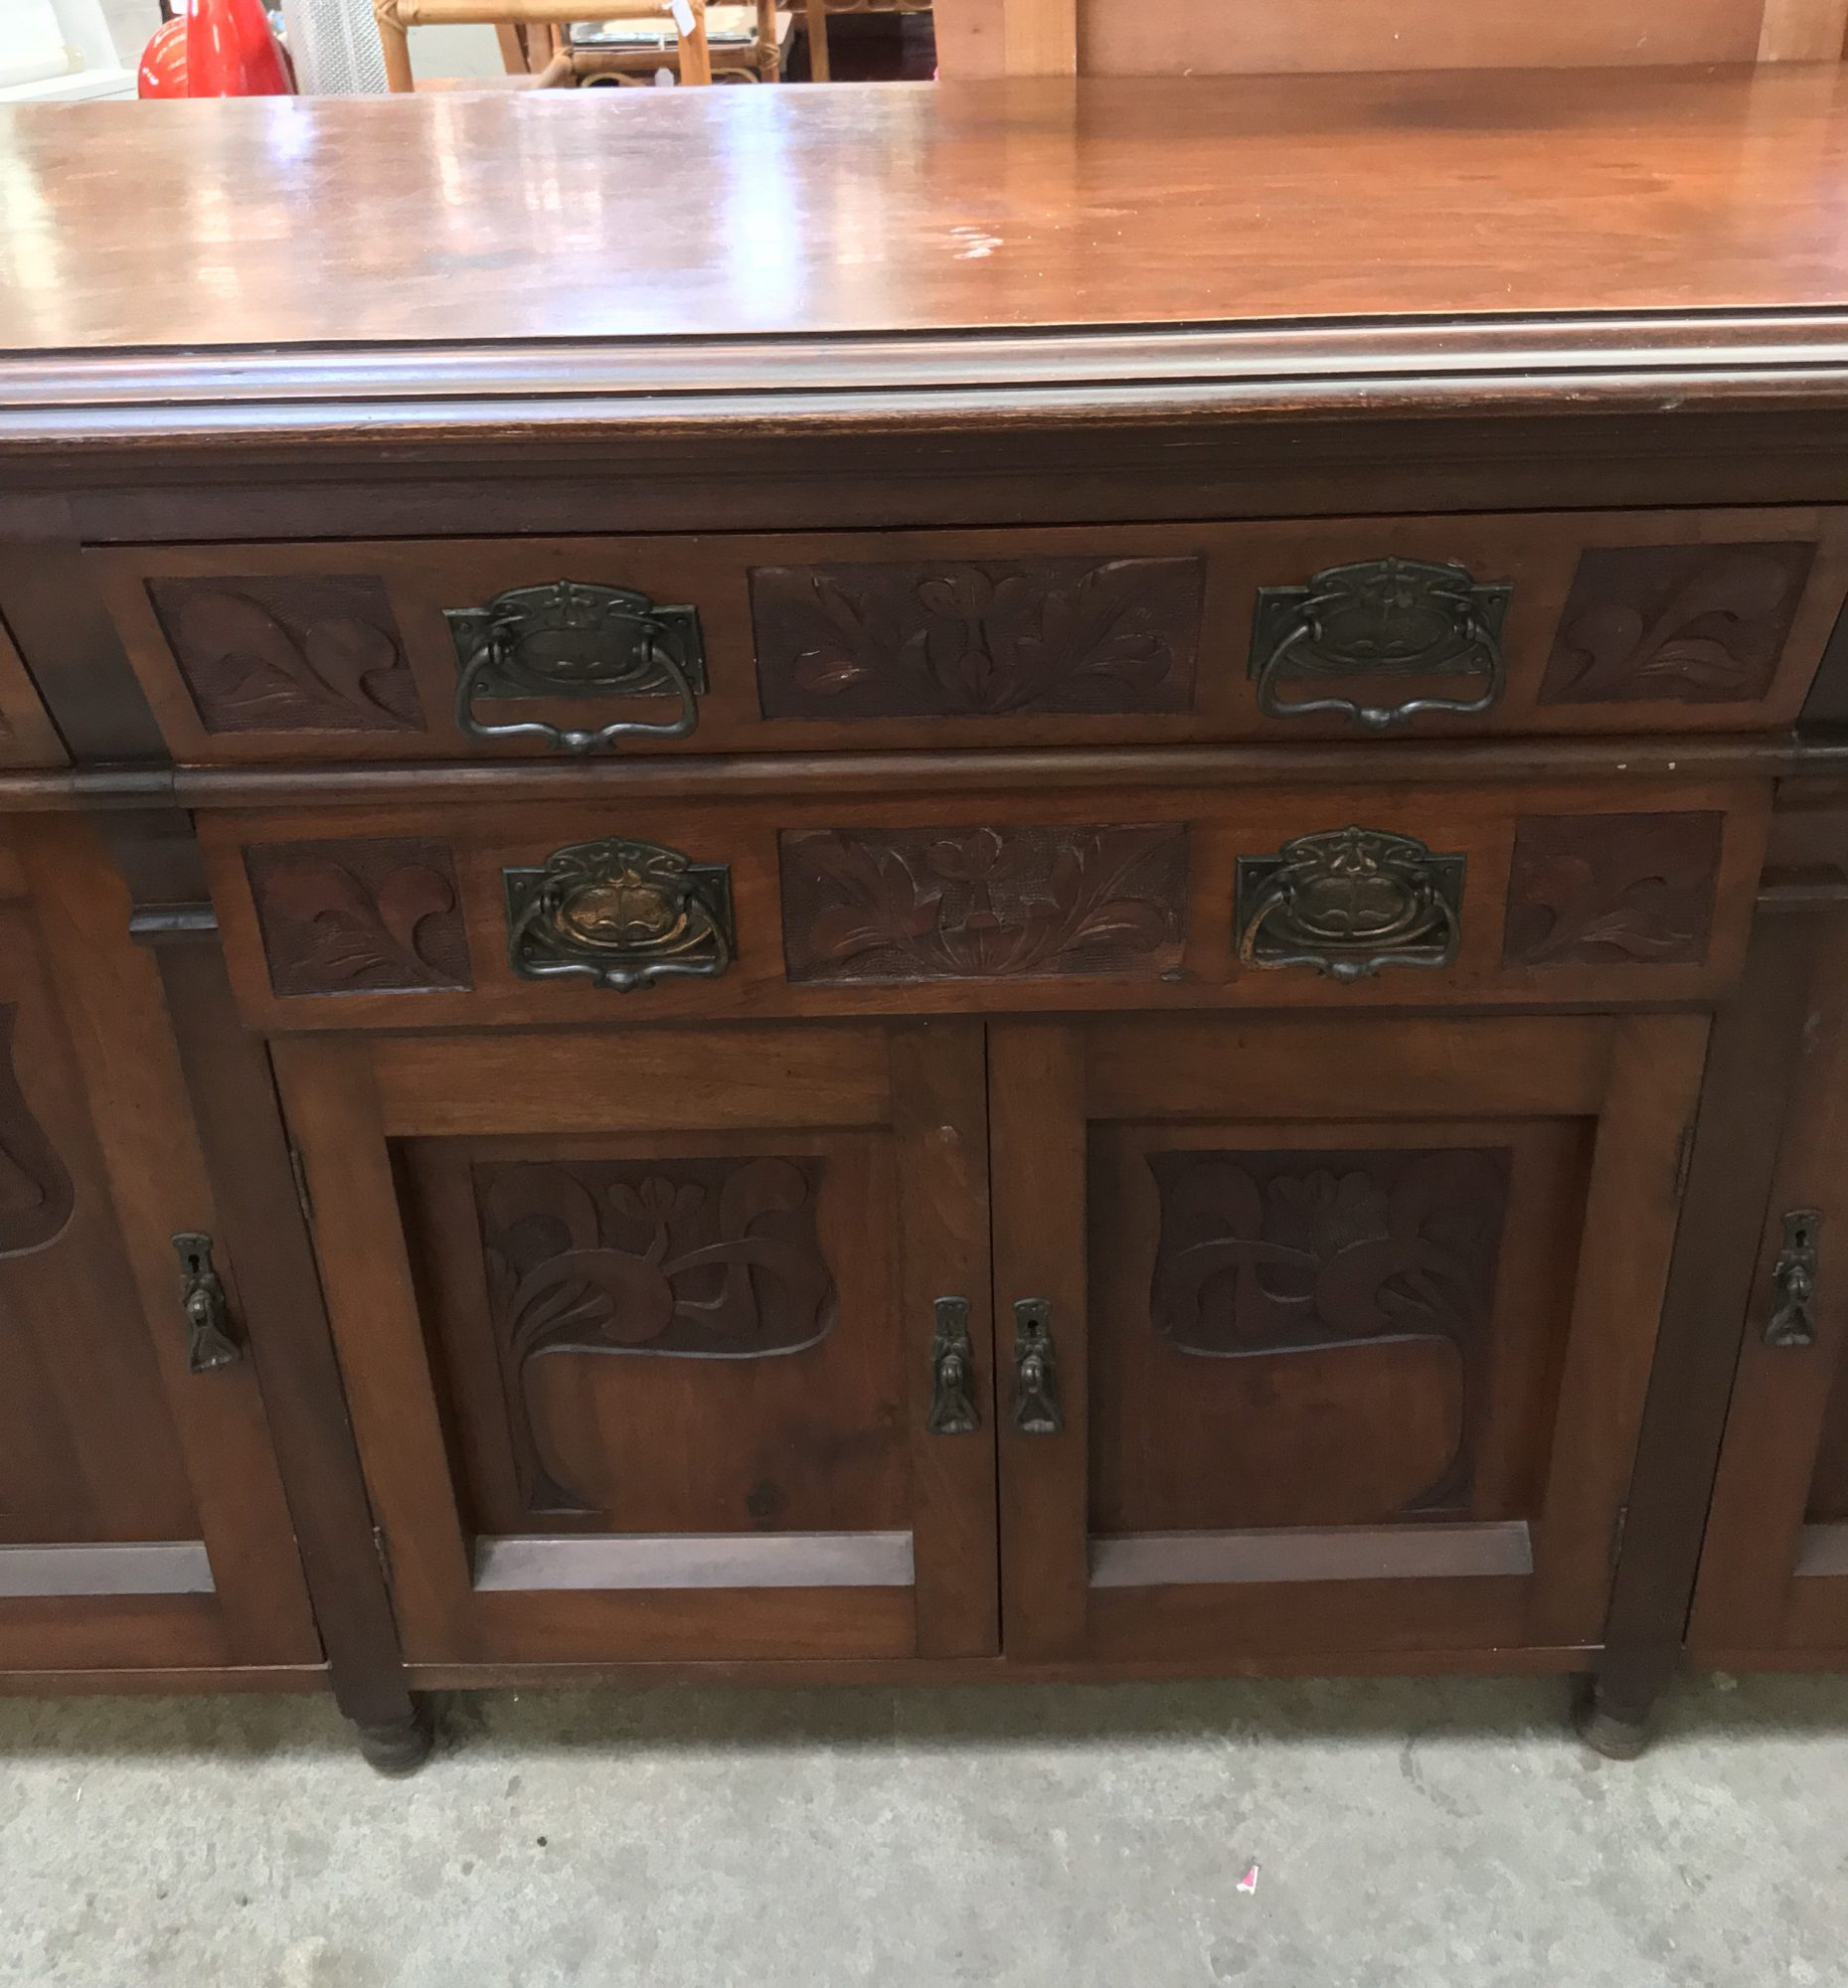 Antique Vintage Art Nouveau Breakfront Sideboard Buffet Display Cabinet Halsey Road Recyclers